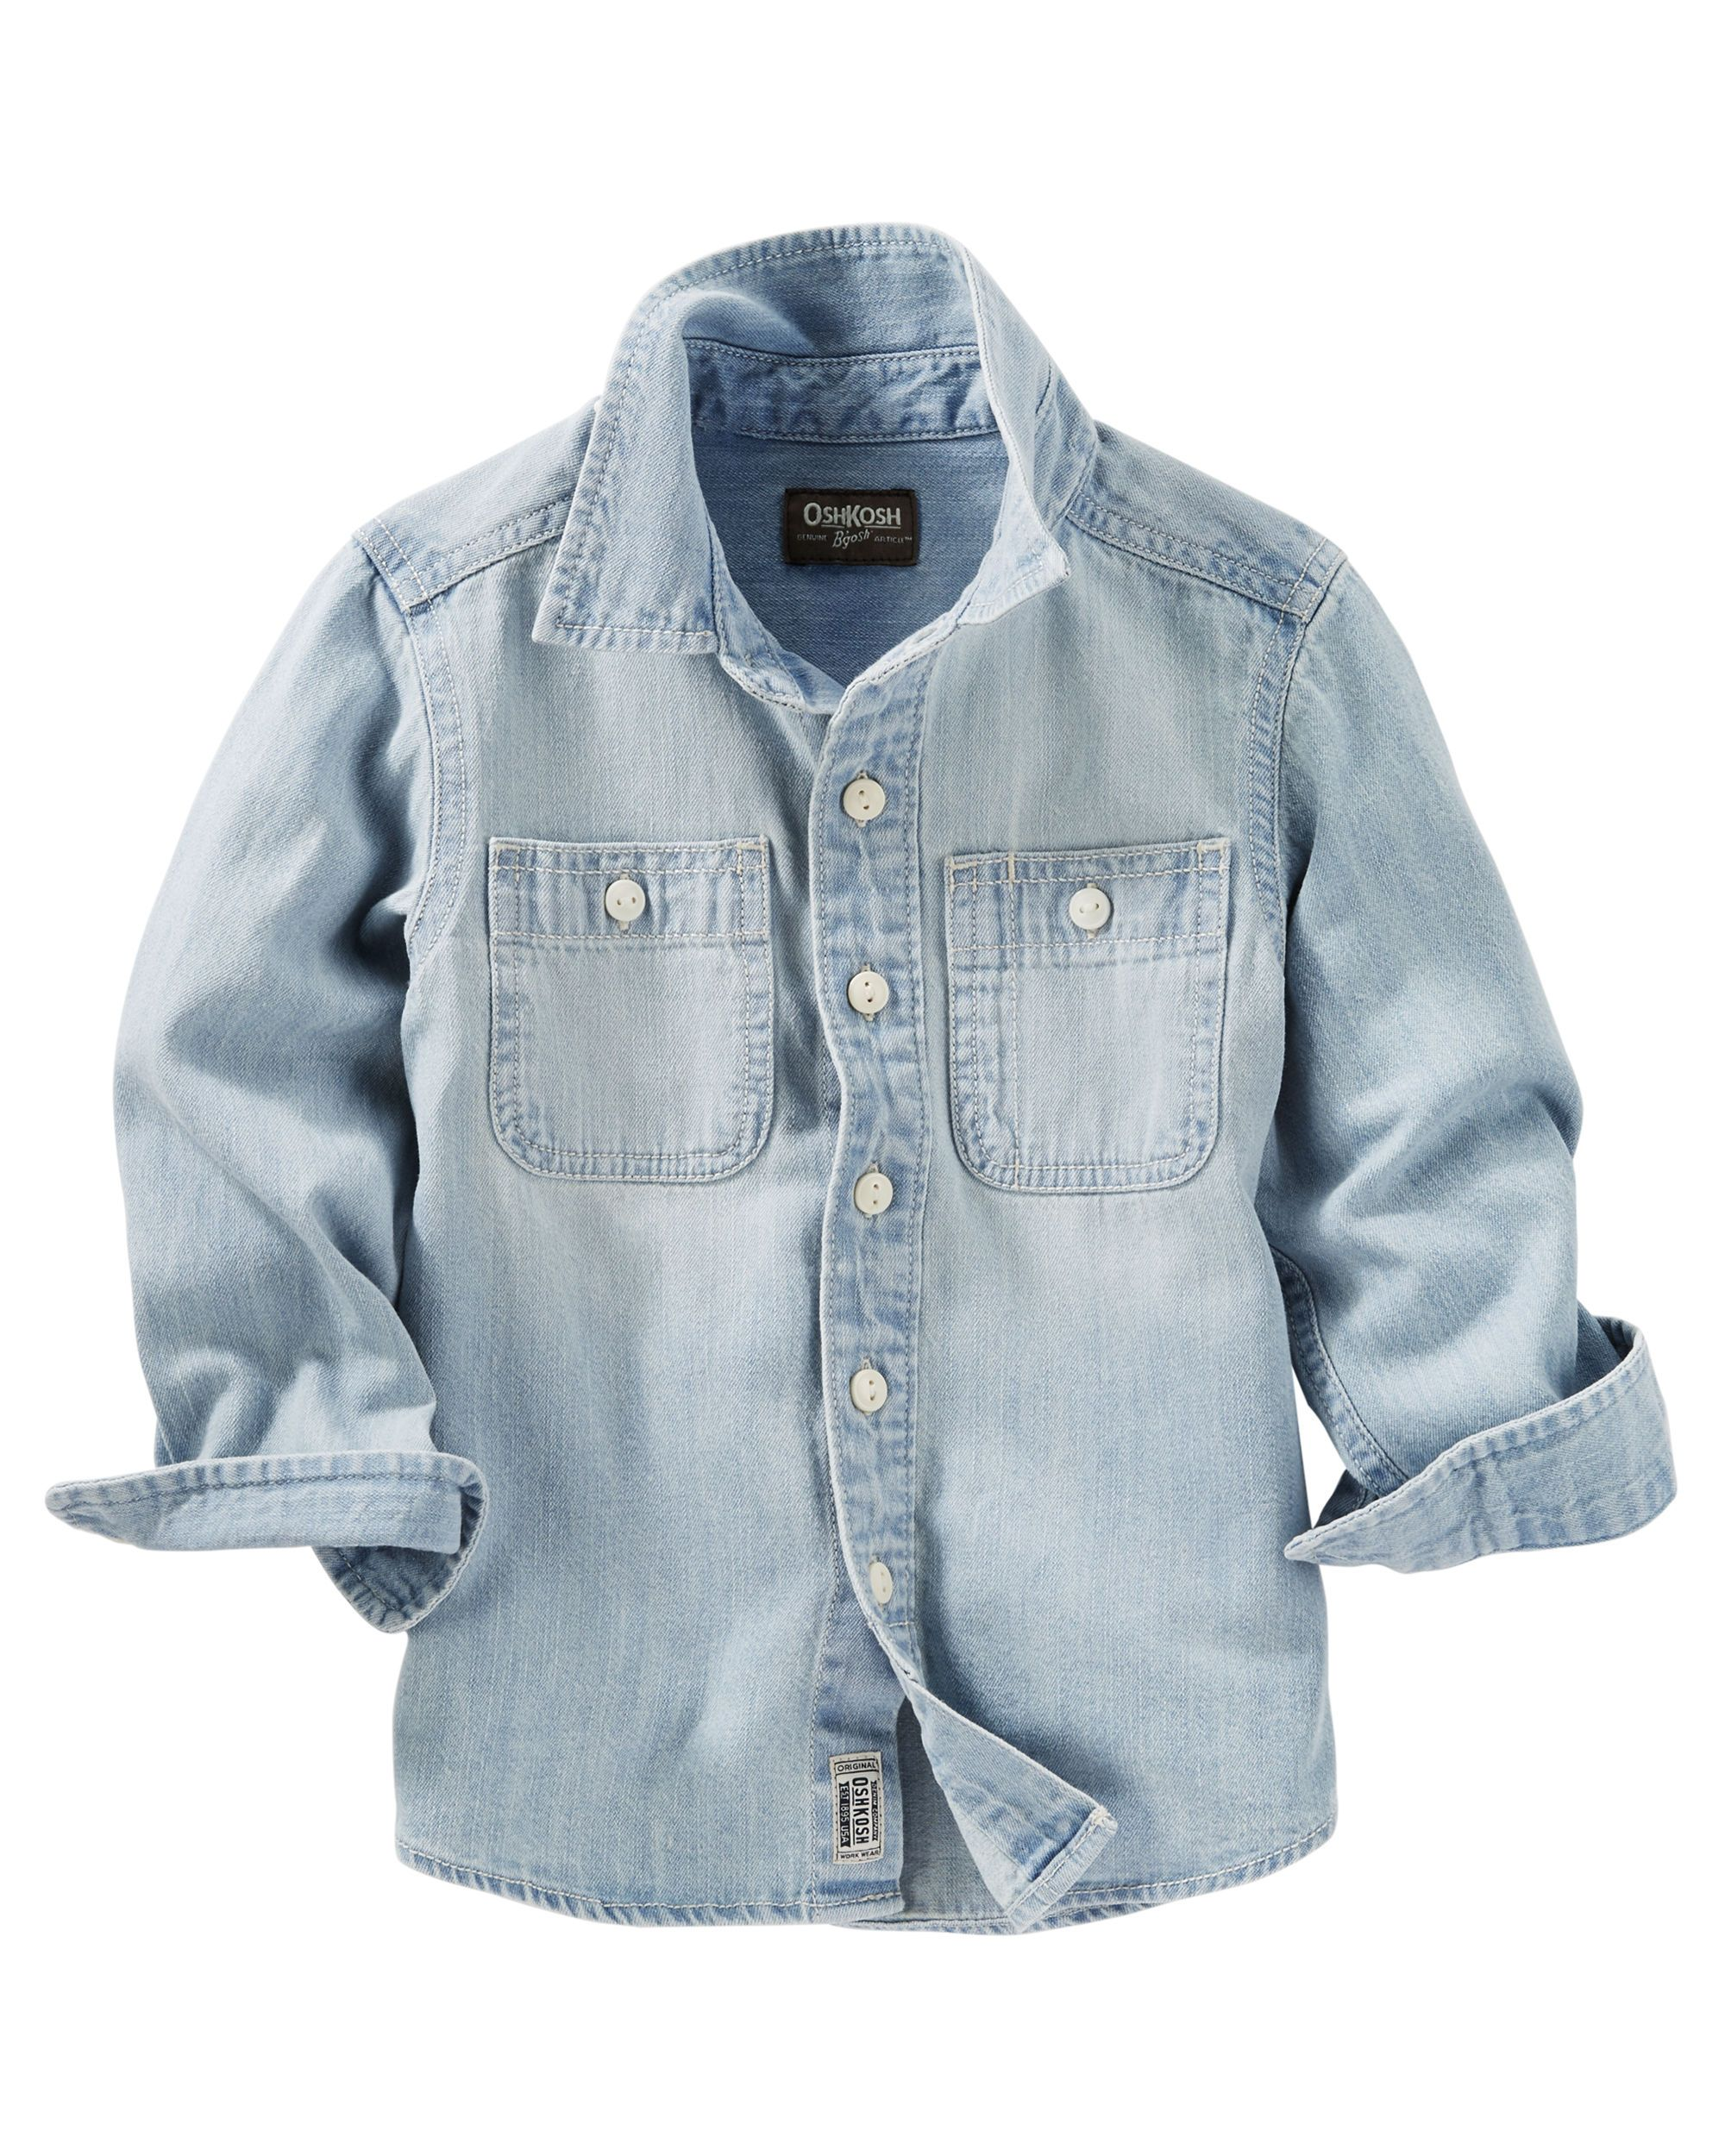 2 Pocket Button Front Chambray Shirt